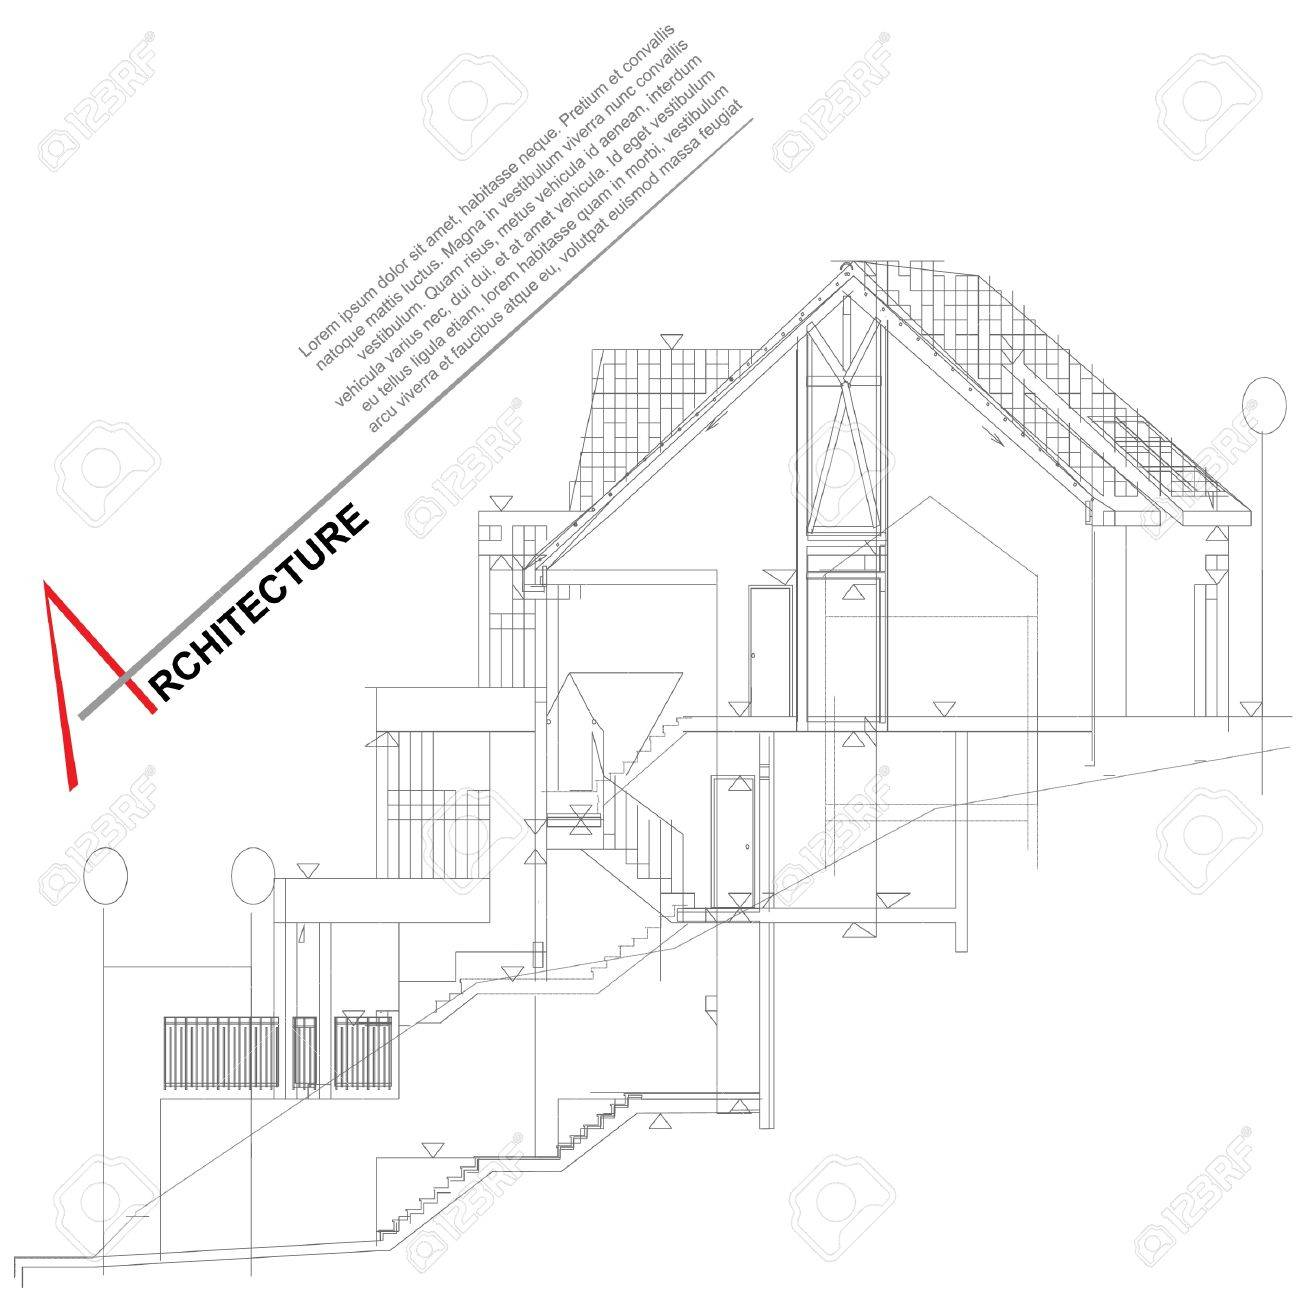 Architectural background  Part of architectural project, architectural plan, technical project, drawing technical letters, architect at work, architecture planning on paper, construction plan Stock Vector - 13914099